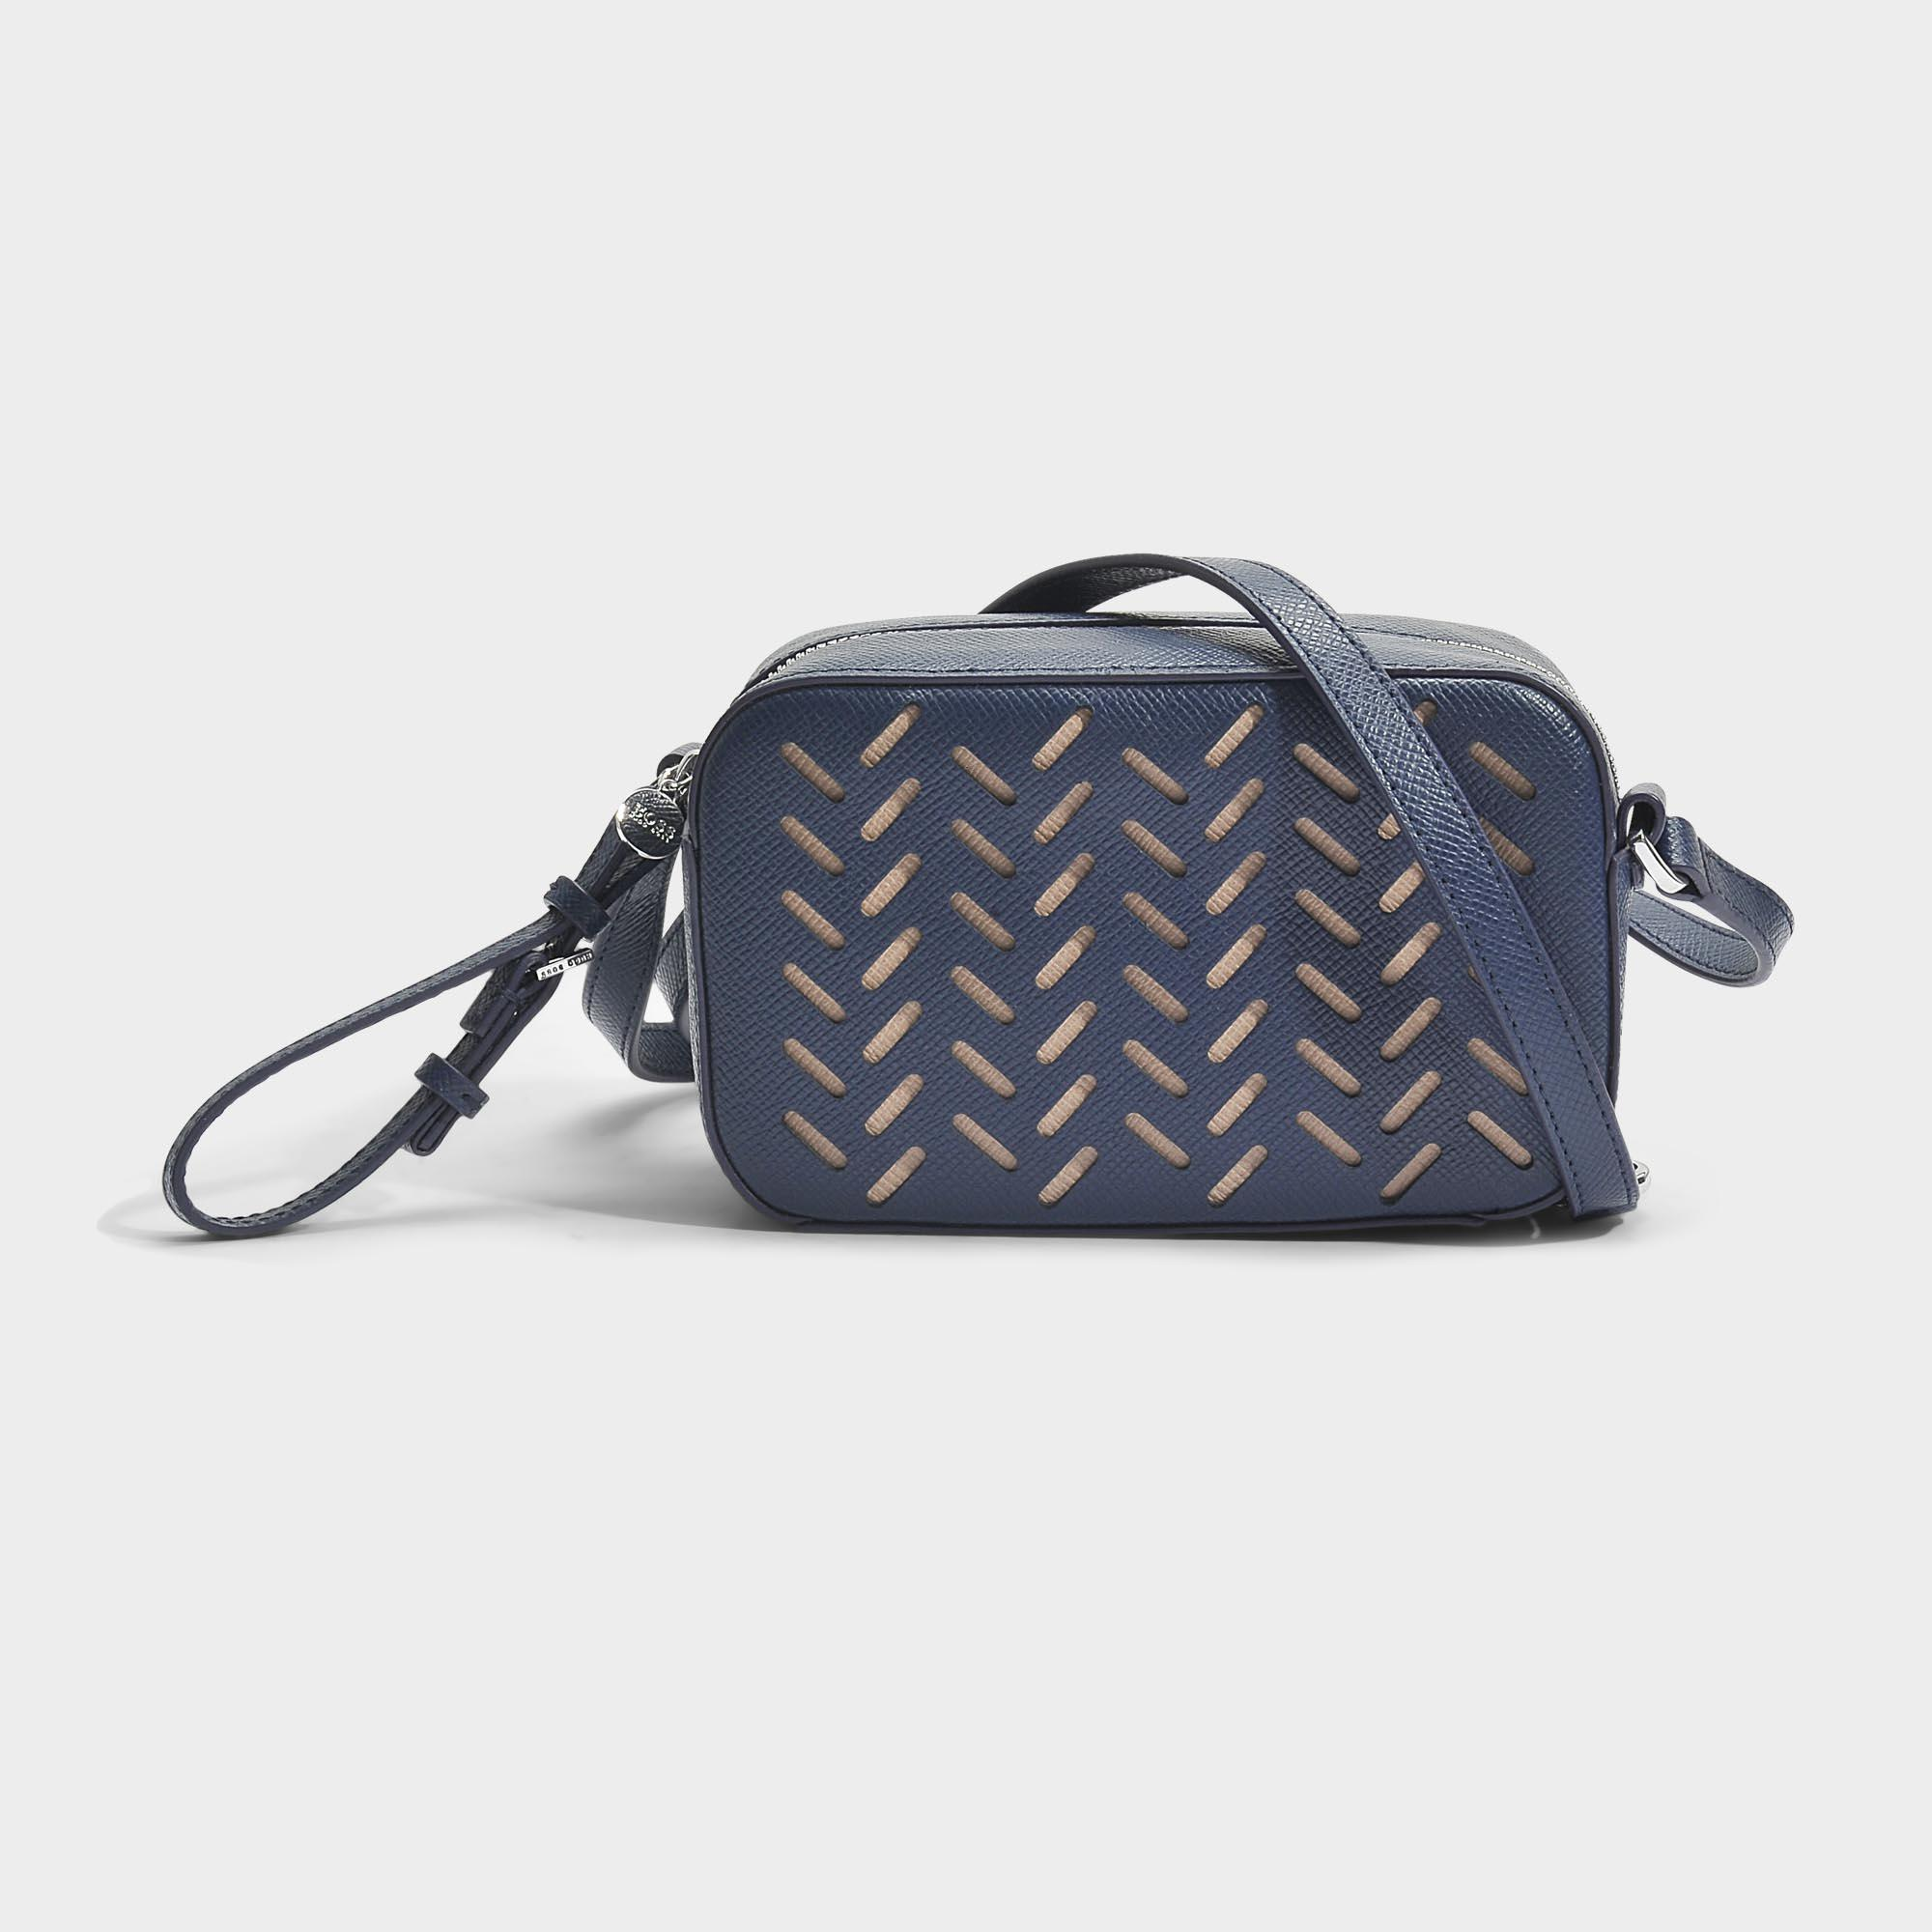 Taylor Lasered Crossbody Bag in Medium Blue Lasered Saffiano Printed Calfskin HUGO BOSS